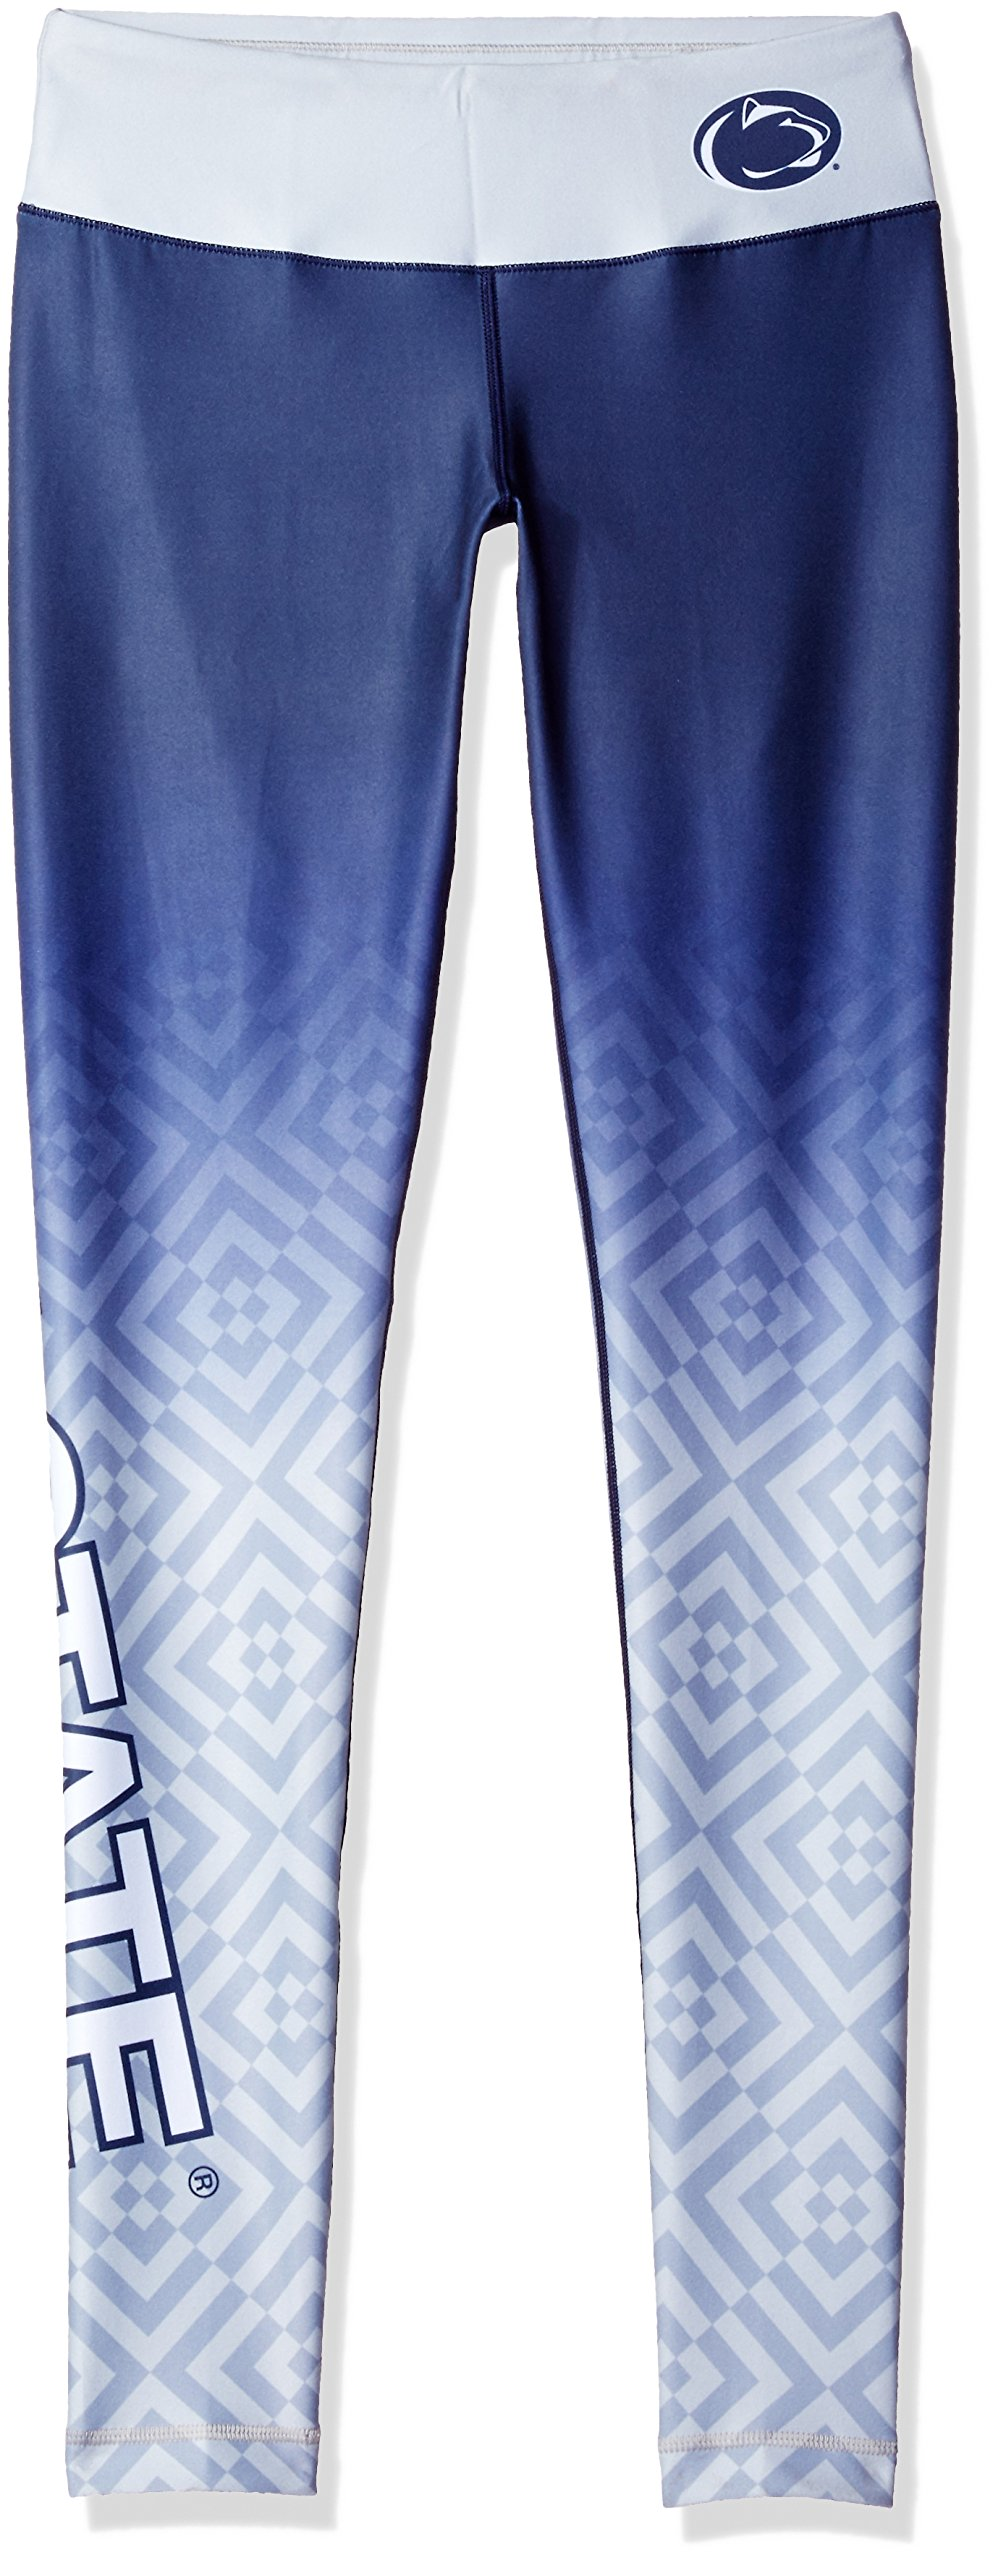 FOCO Penn State Gradient Print Legging - Womens Extra Small